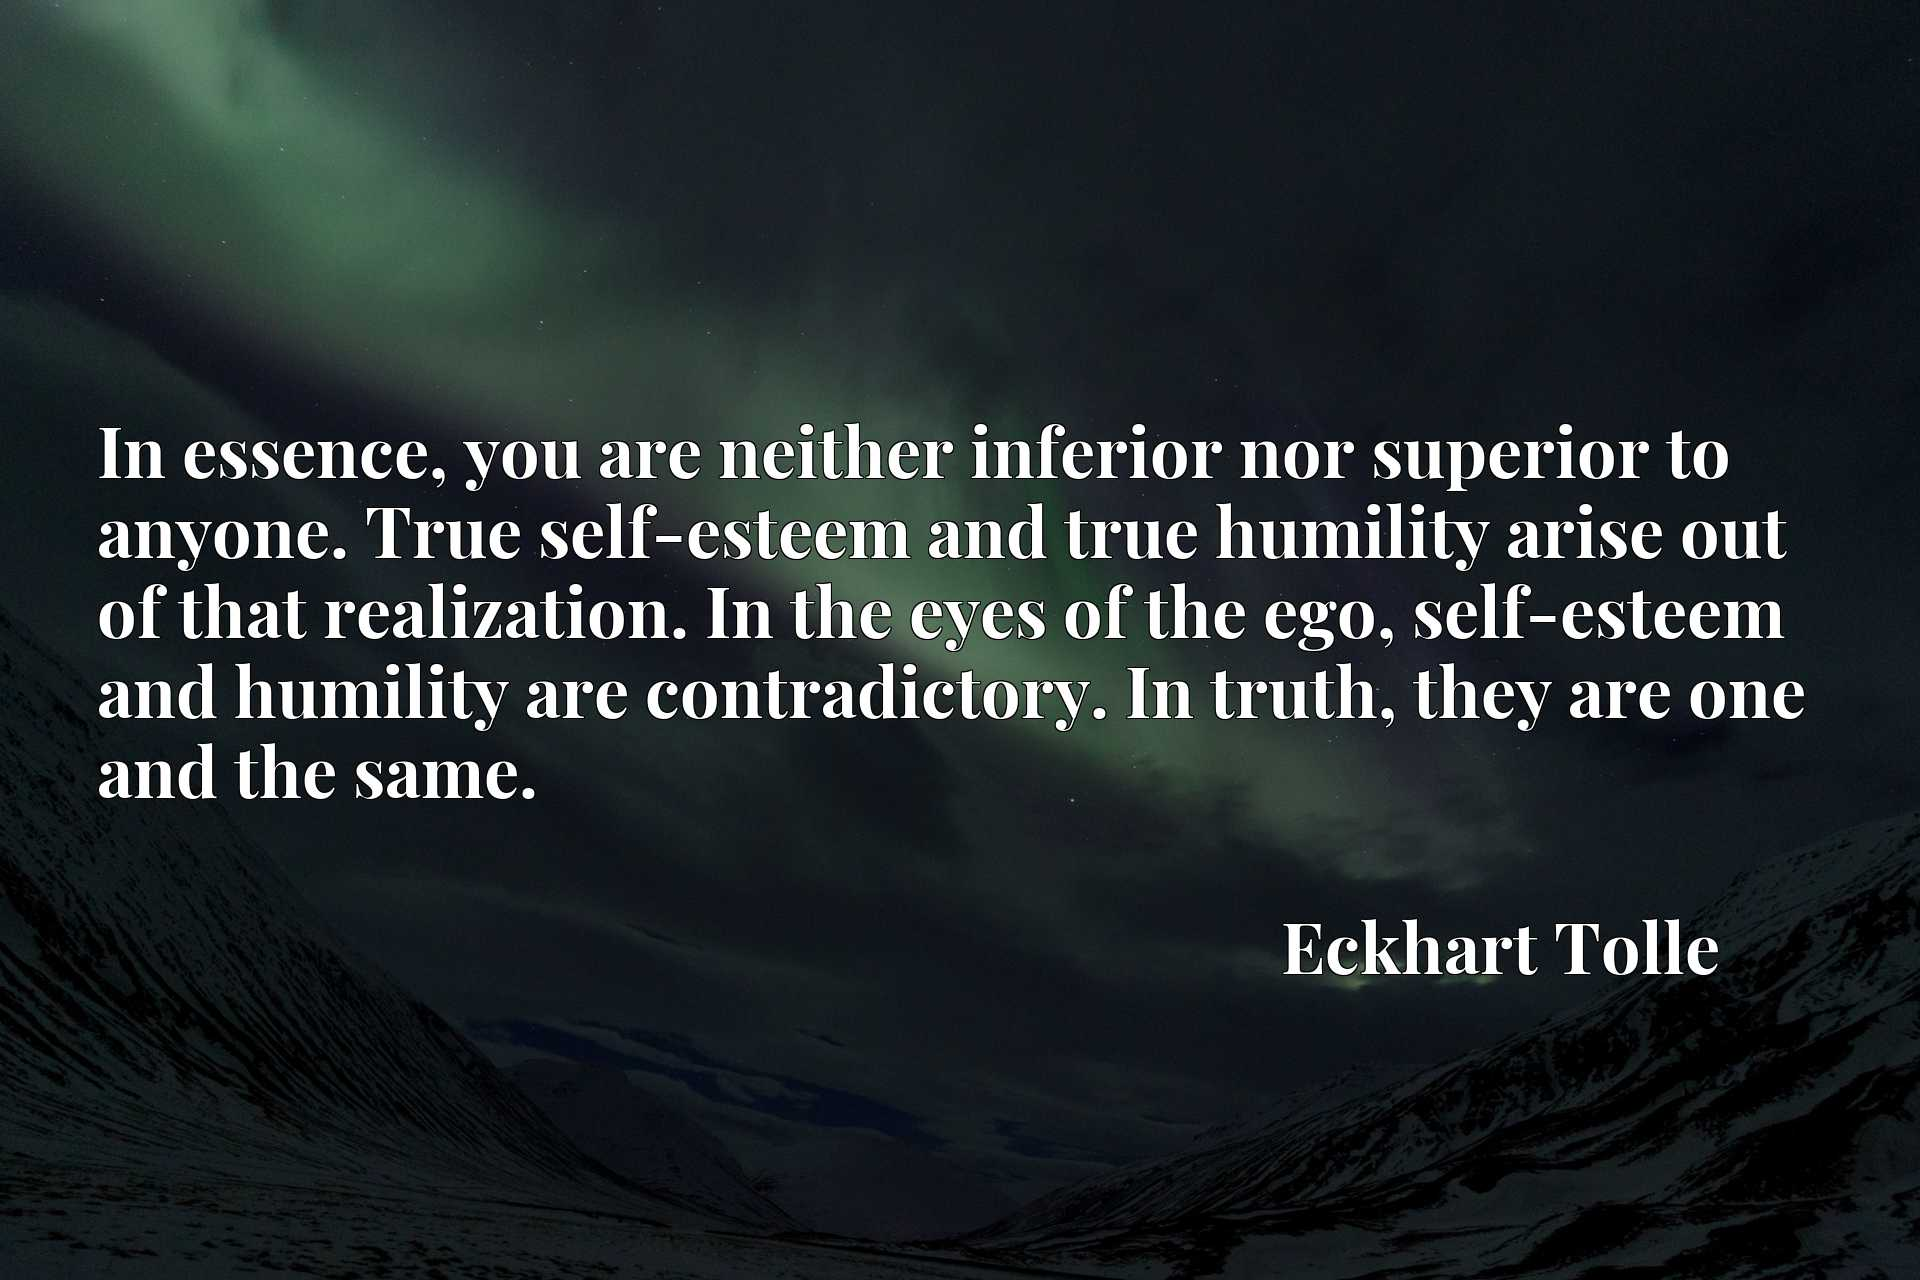 In essence, you are neither inferior nor superior to anyone. True self-esteem and true humility arise out of that realization. In the eyes of the ego, self-esteem and humility are contradictory. In truth, they are one and the same.